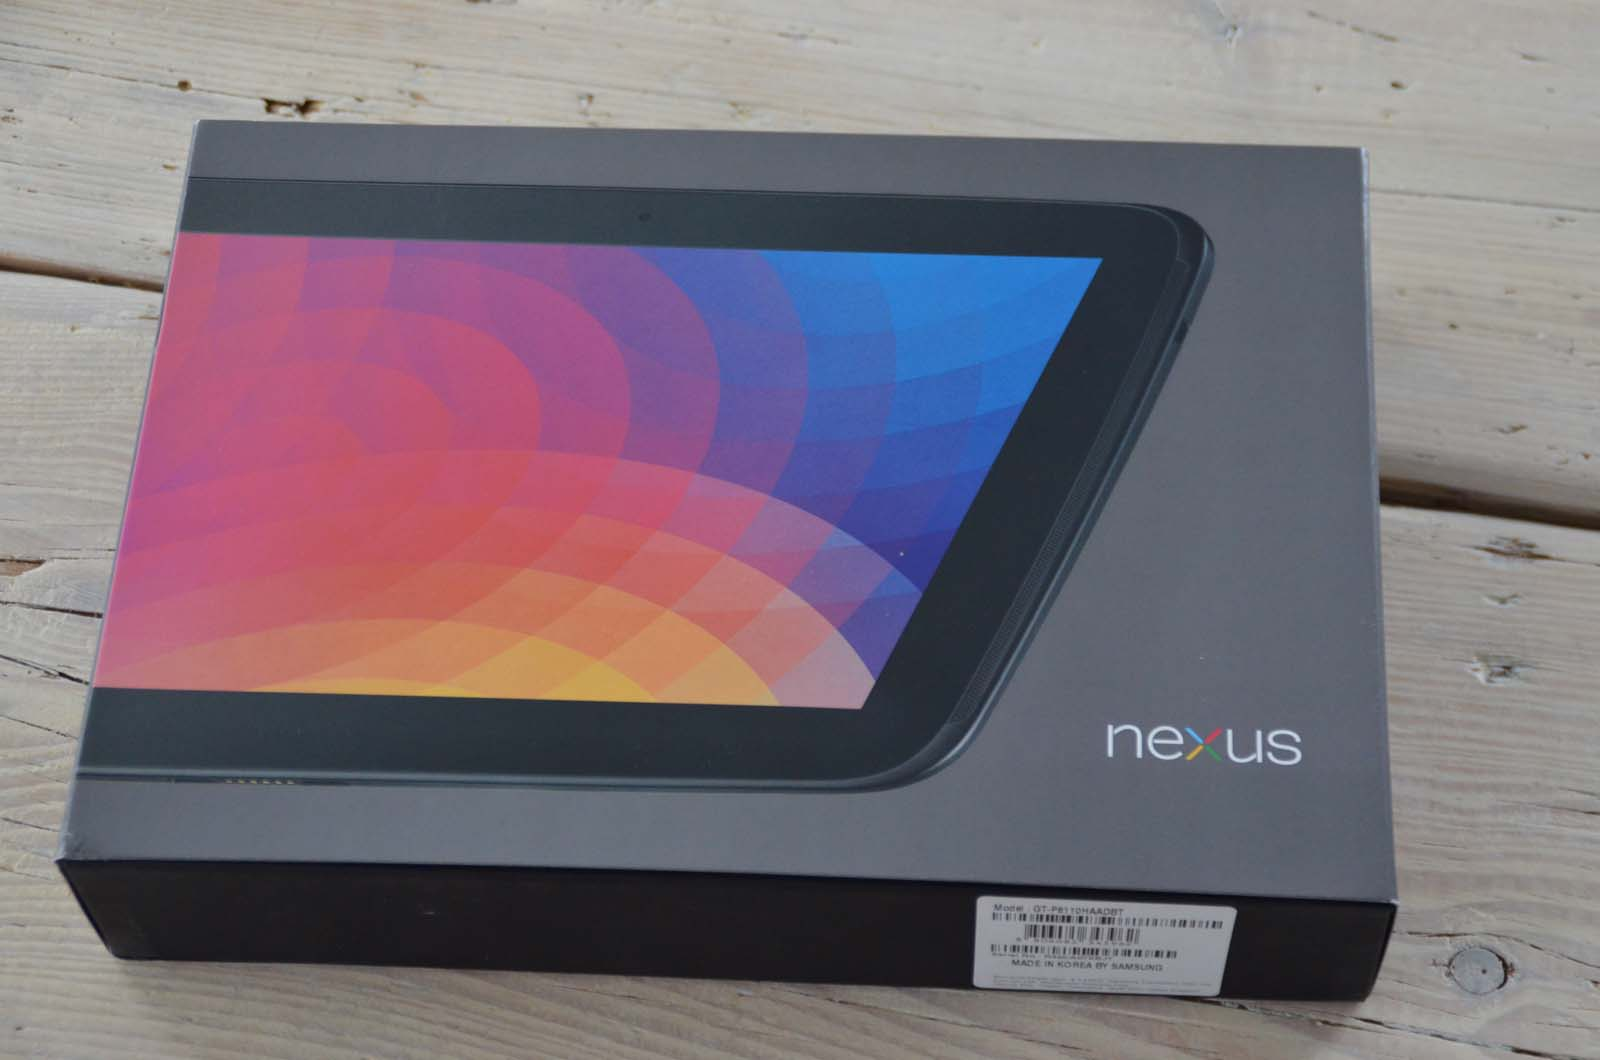 unboxing-google-nexus-10-1.jpg